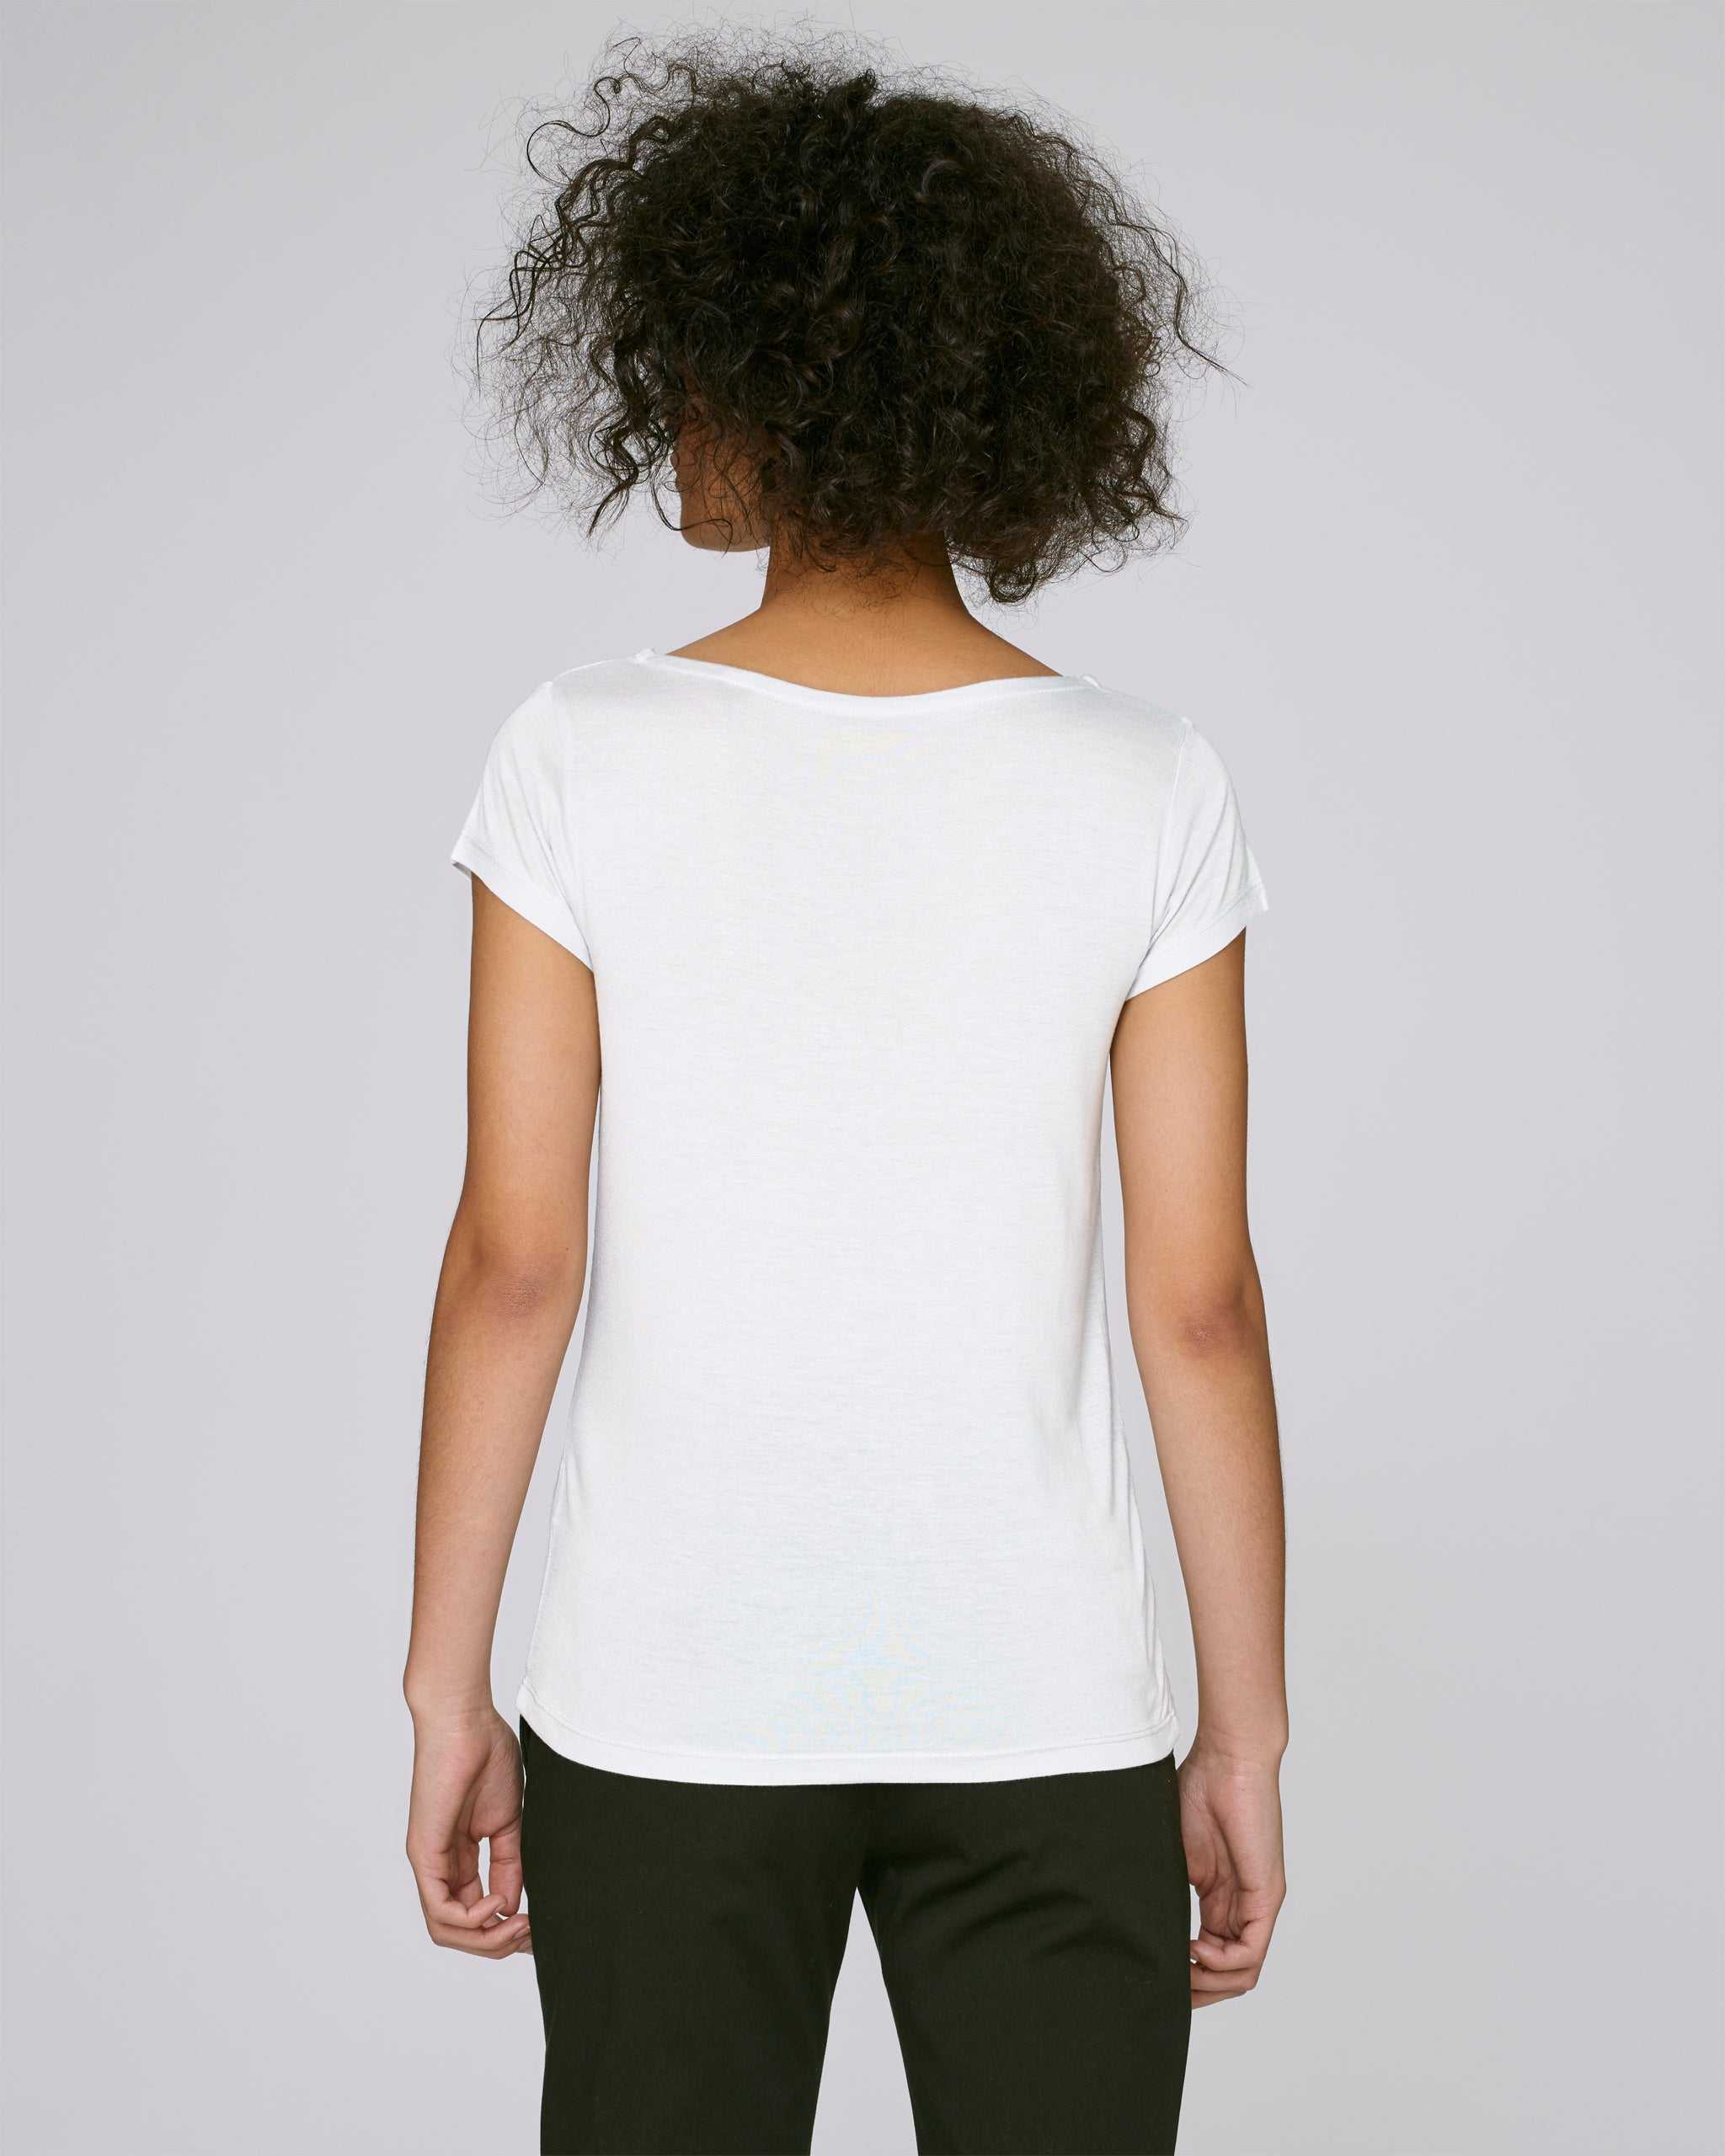 She Glows Modal White-T-shirt-Sancho's Dress